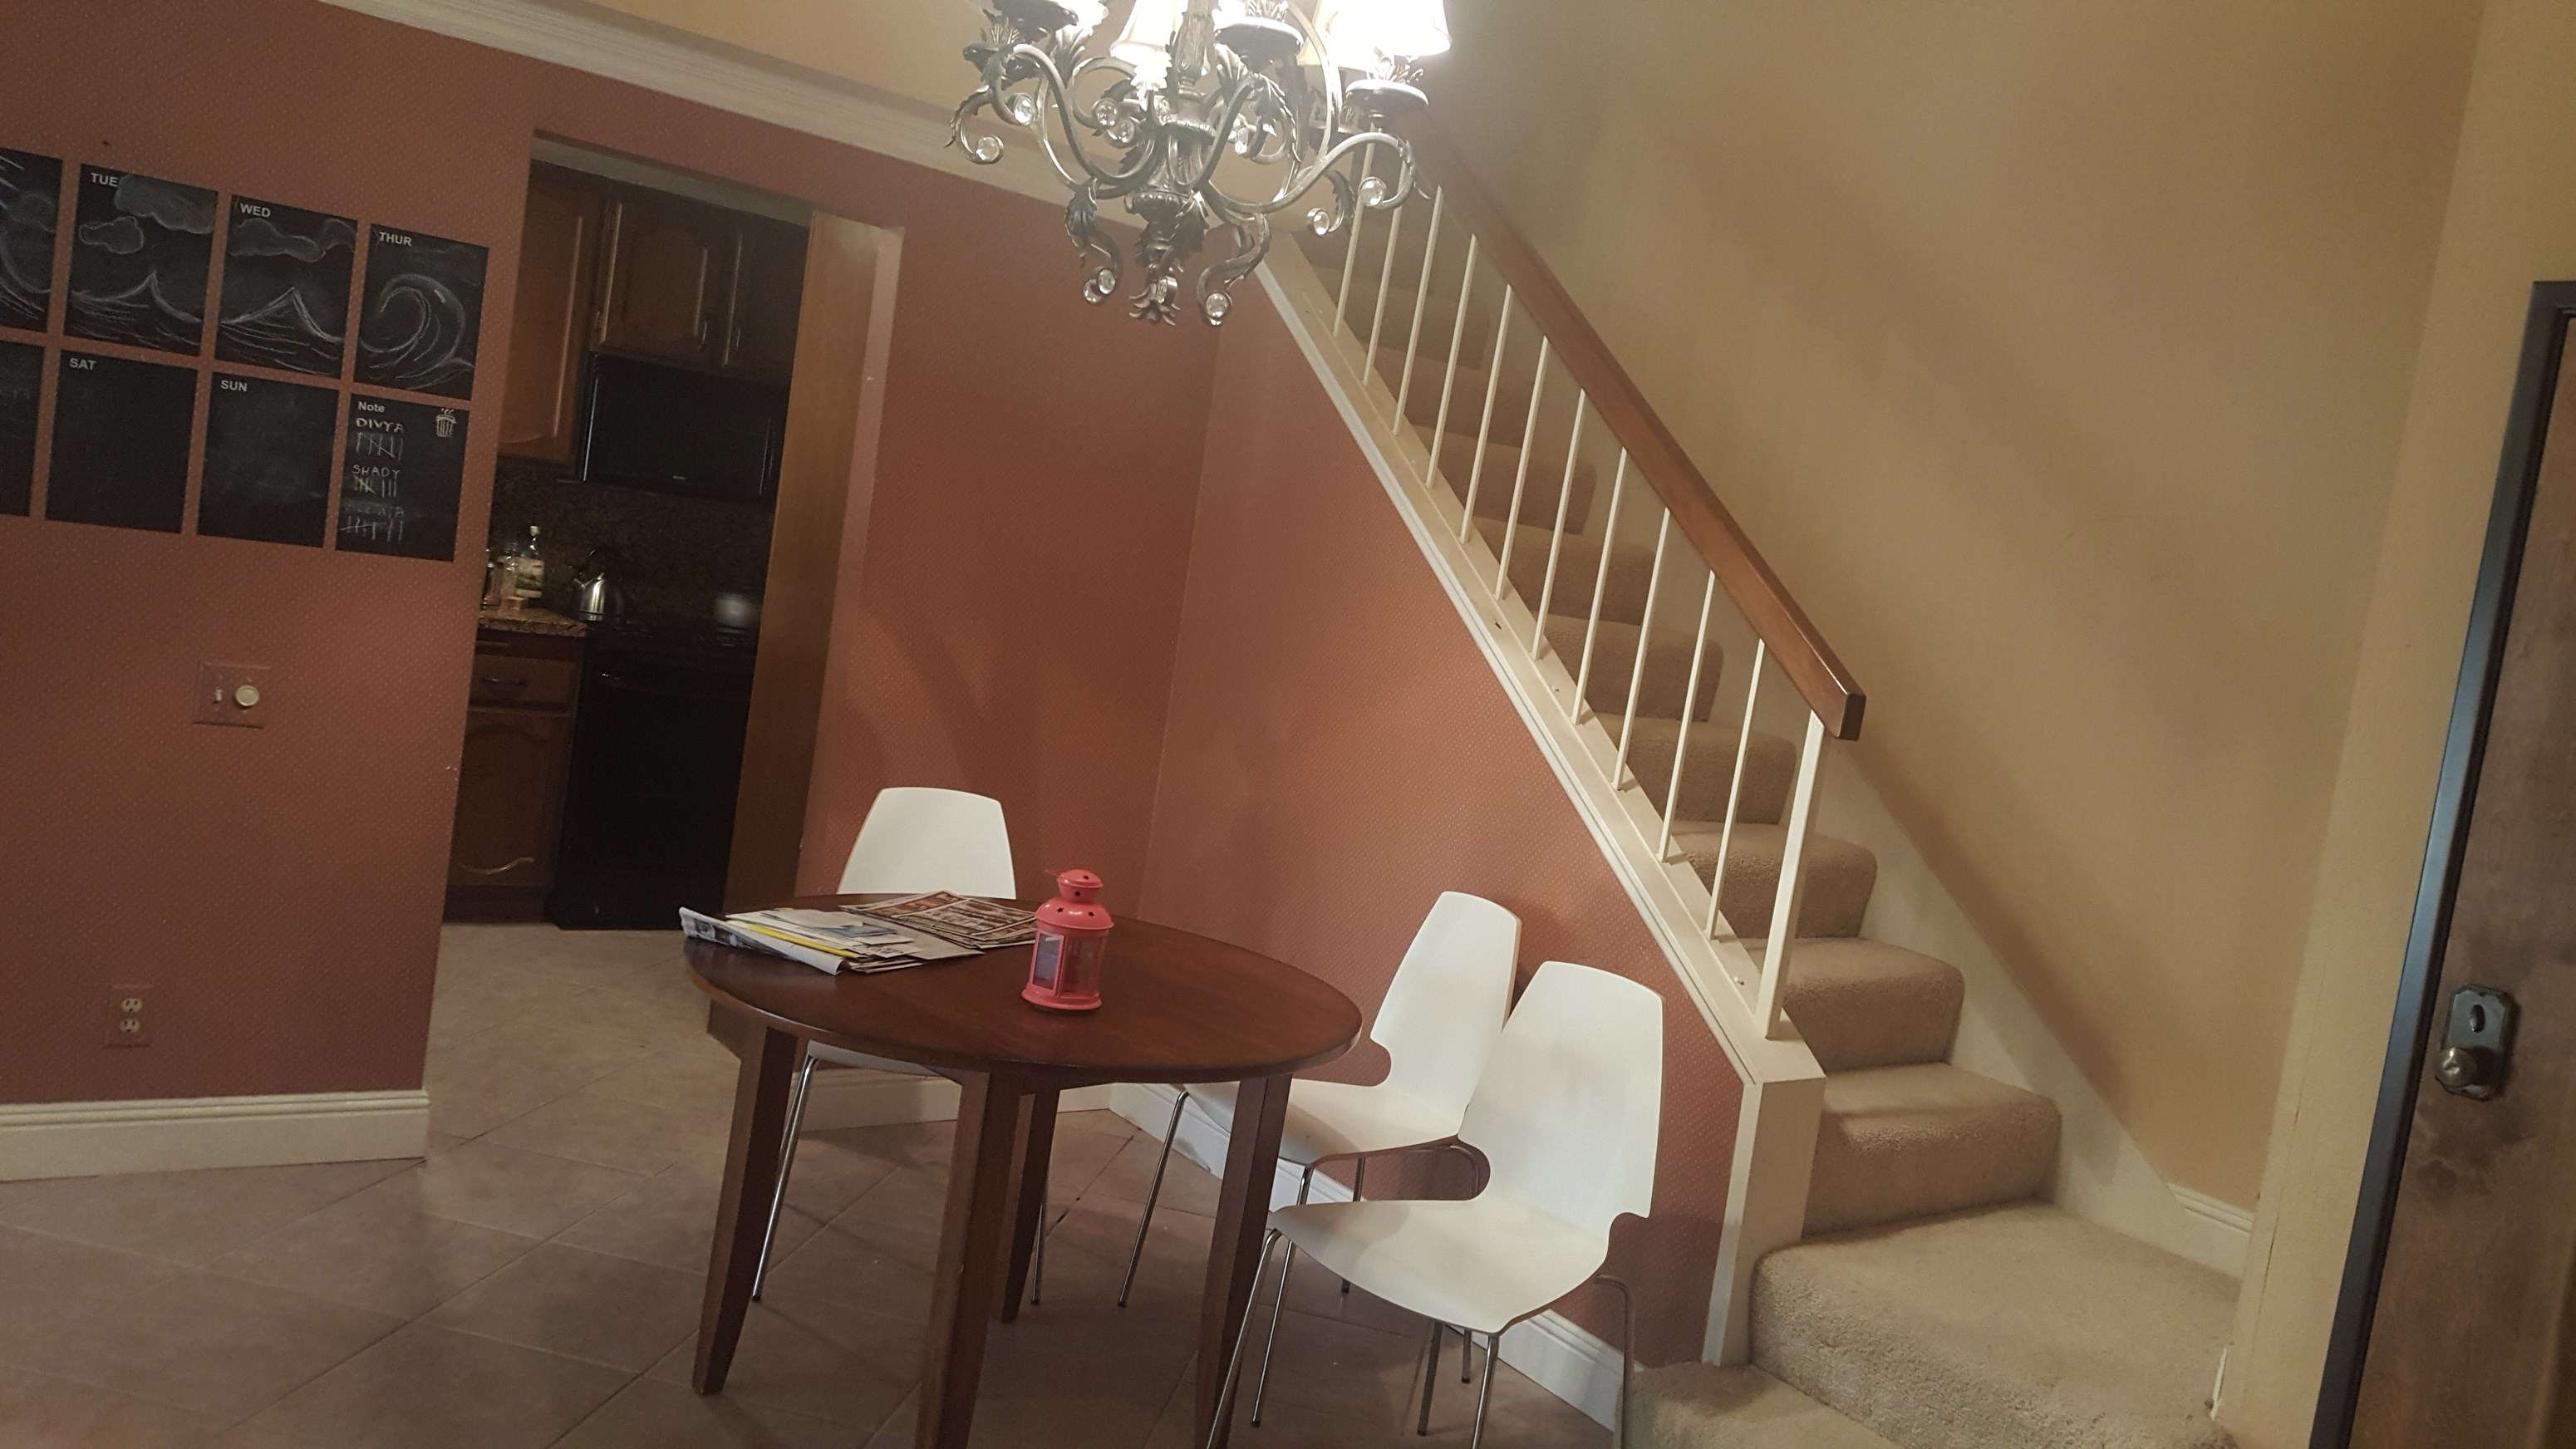 Room For Rent In Irvine In Irvine Ca 743603 Sulekha Roommates